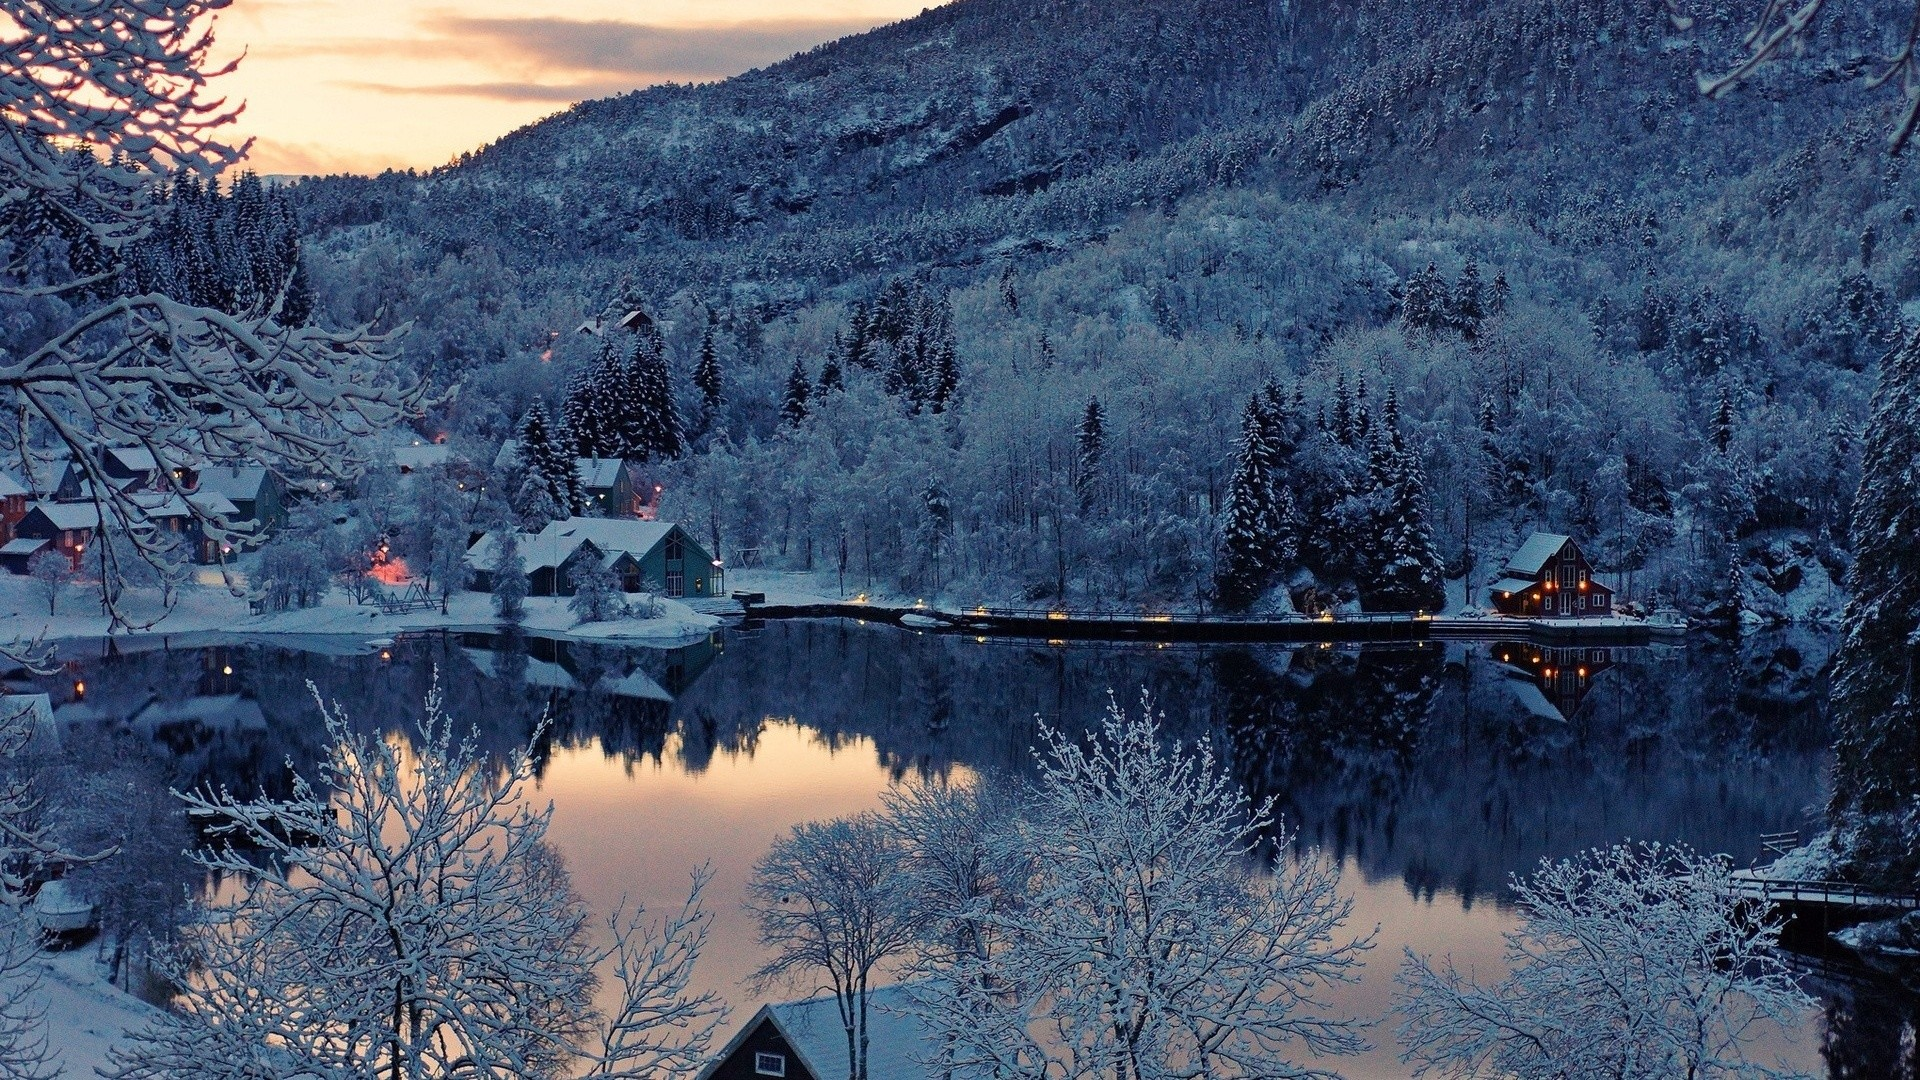 Snow Forest Houses & Lake